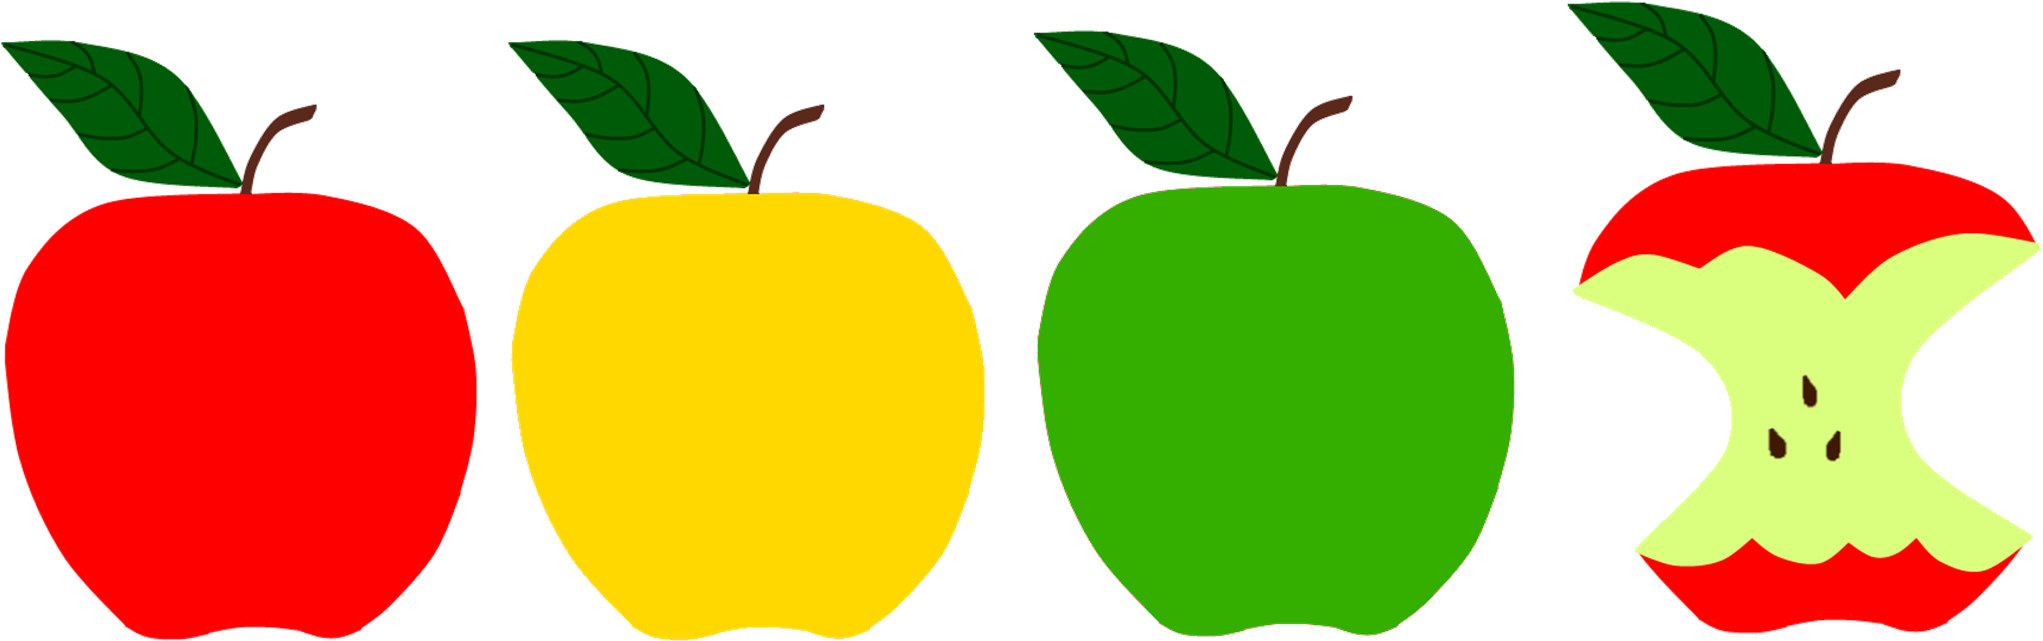 Transparent apples clipart - Apple Picking Clipart - Red Yellow Green Apple